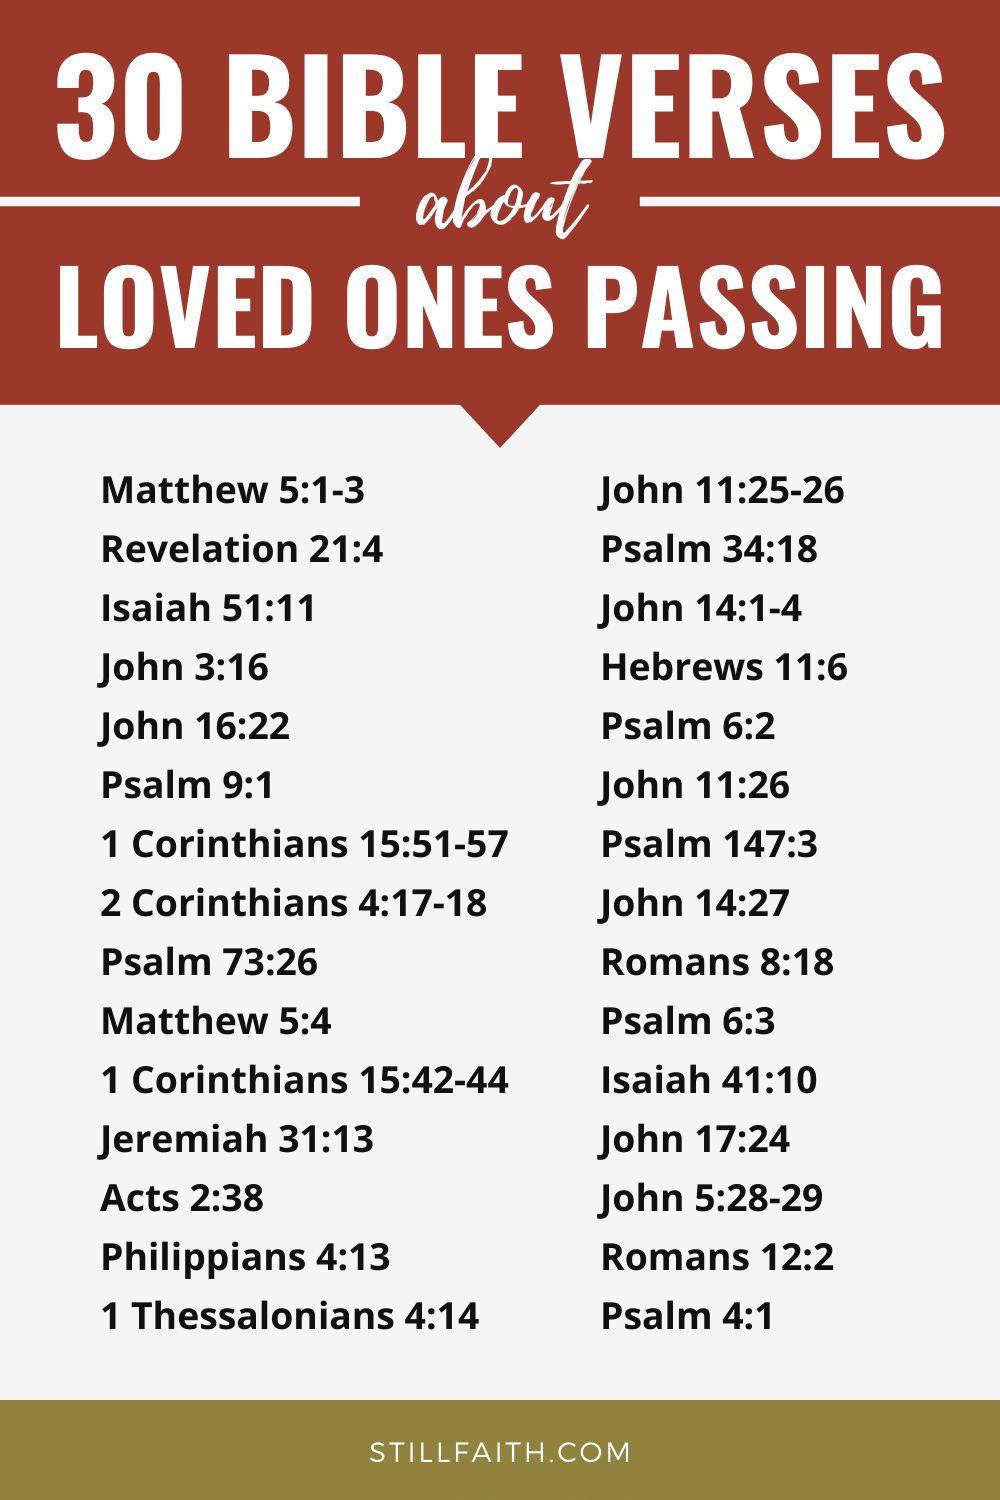 168 Bible Verses about Loved Ones Passing